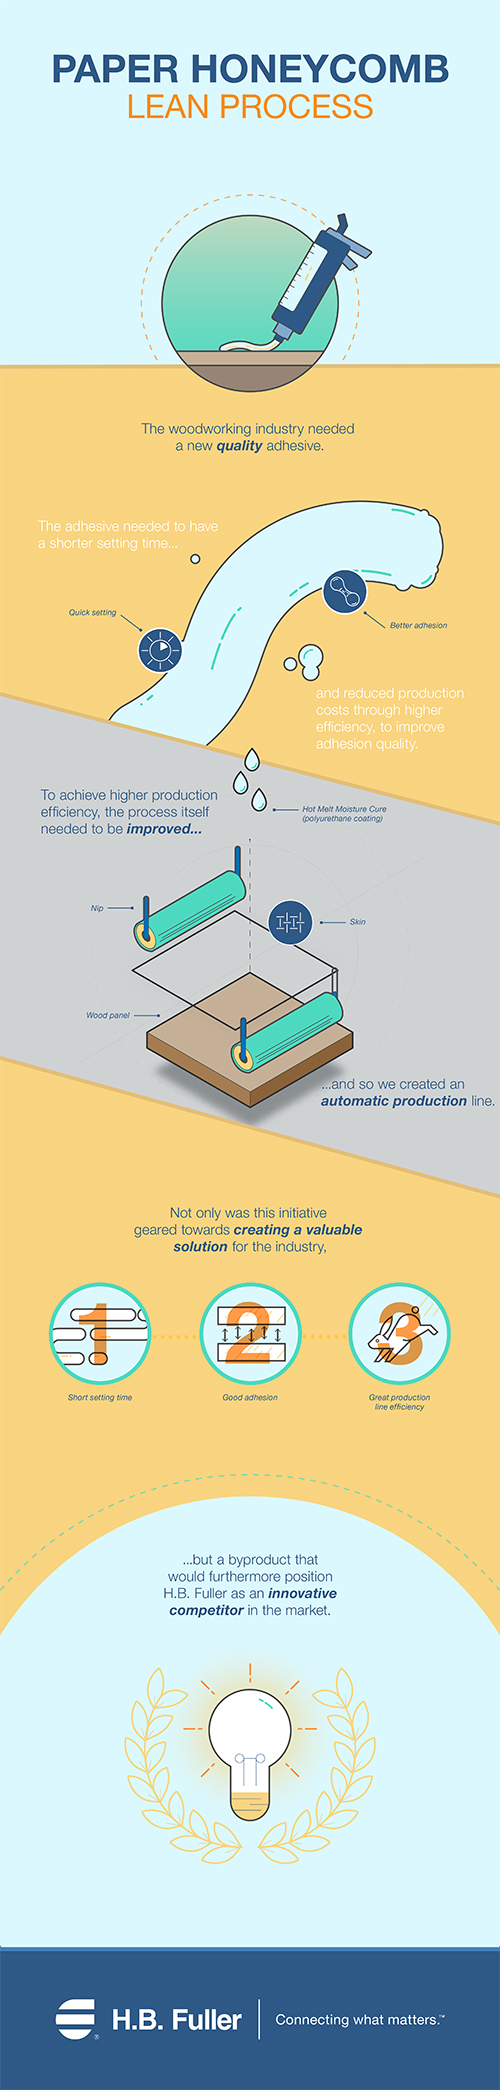 Paper Honeycomb Lean Process Infographic